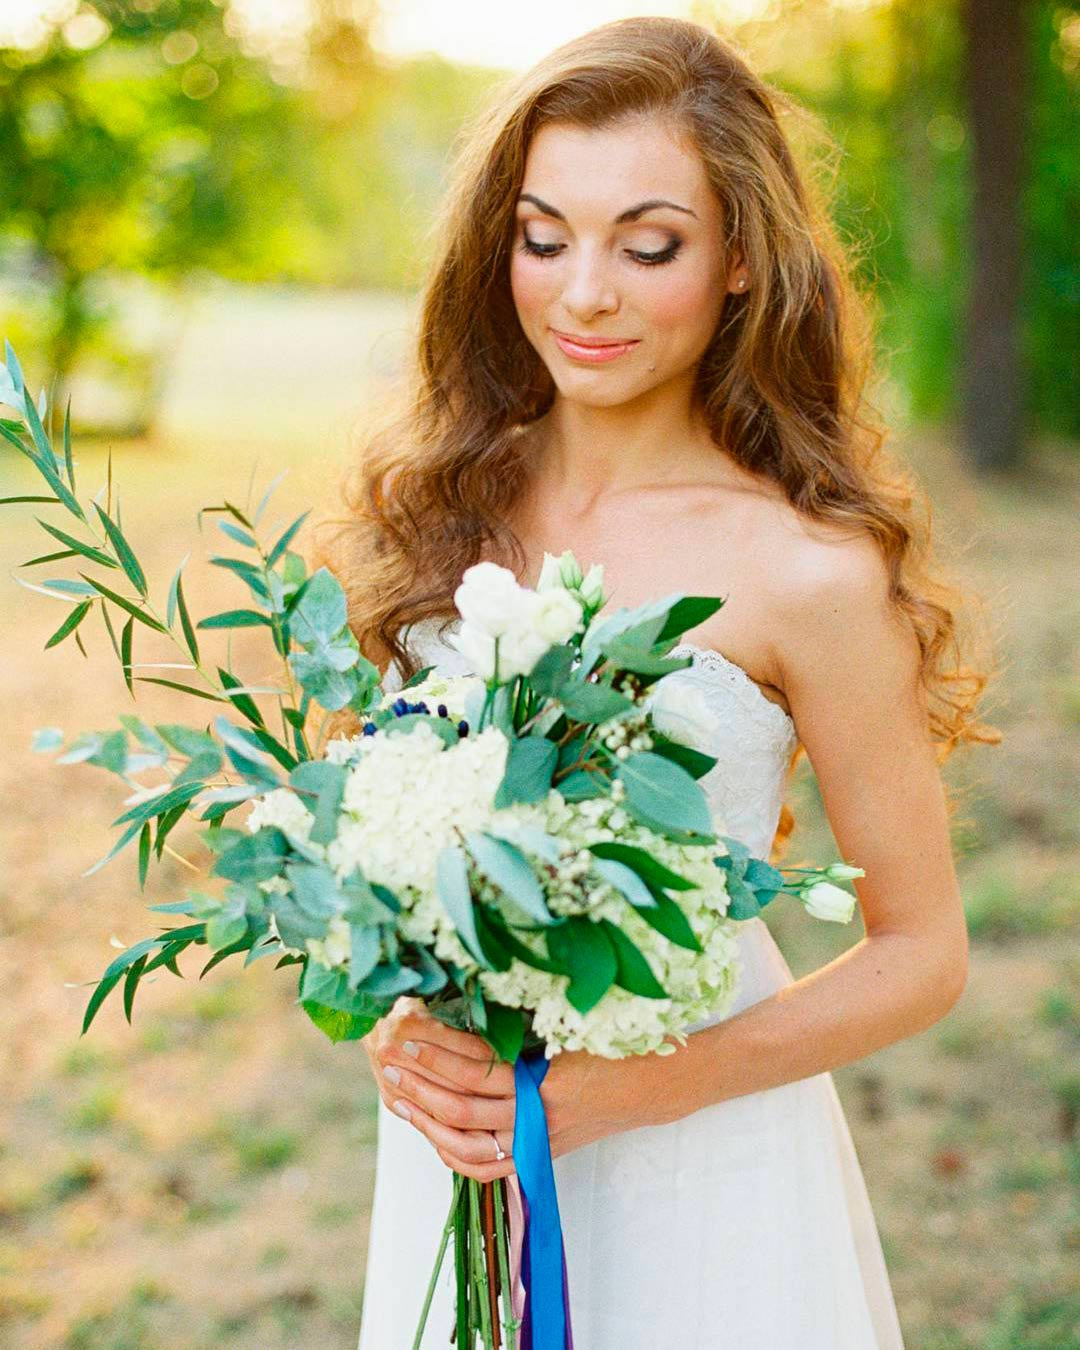 blue and white flowers bouquet bride